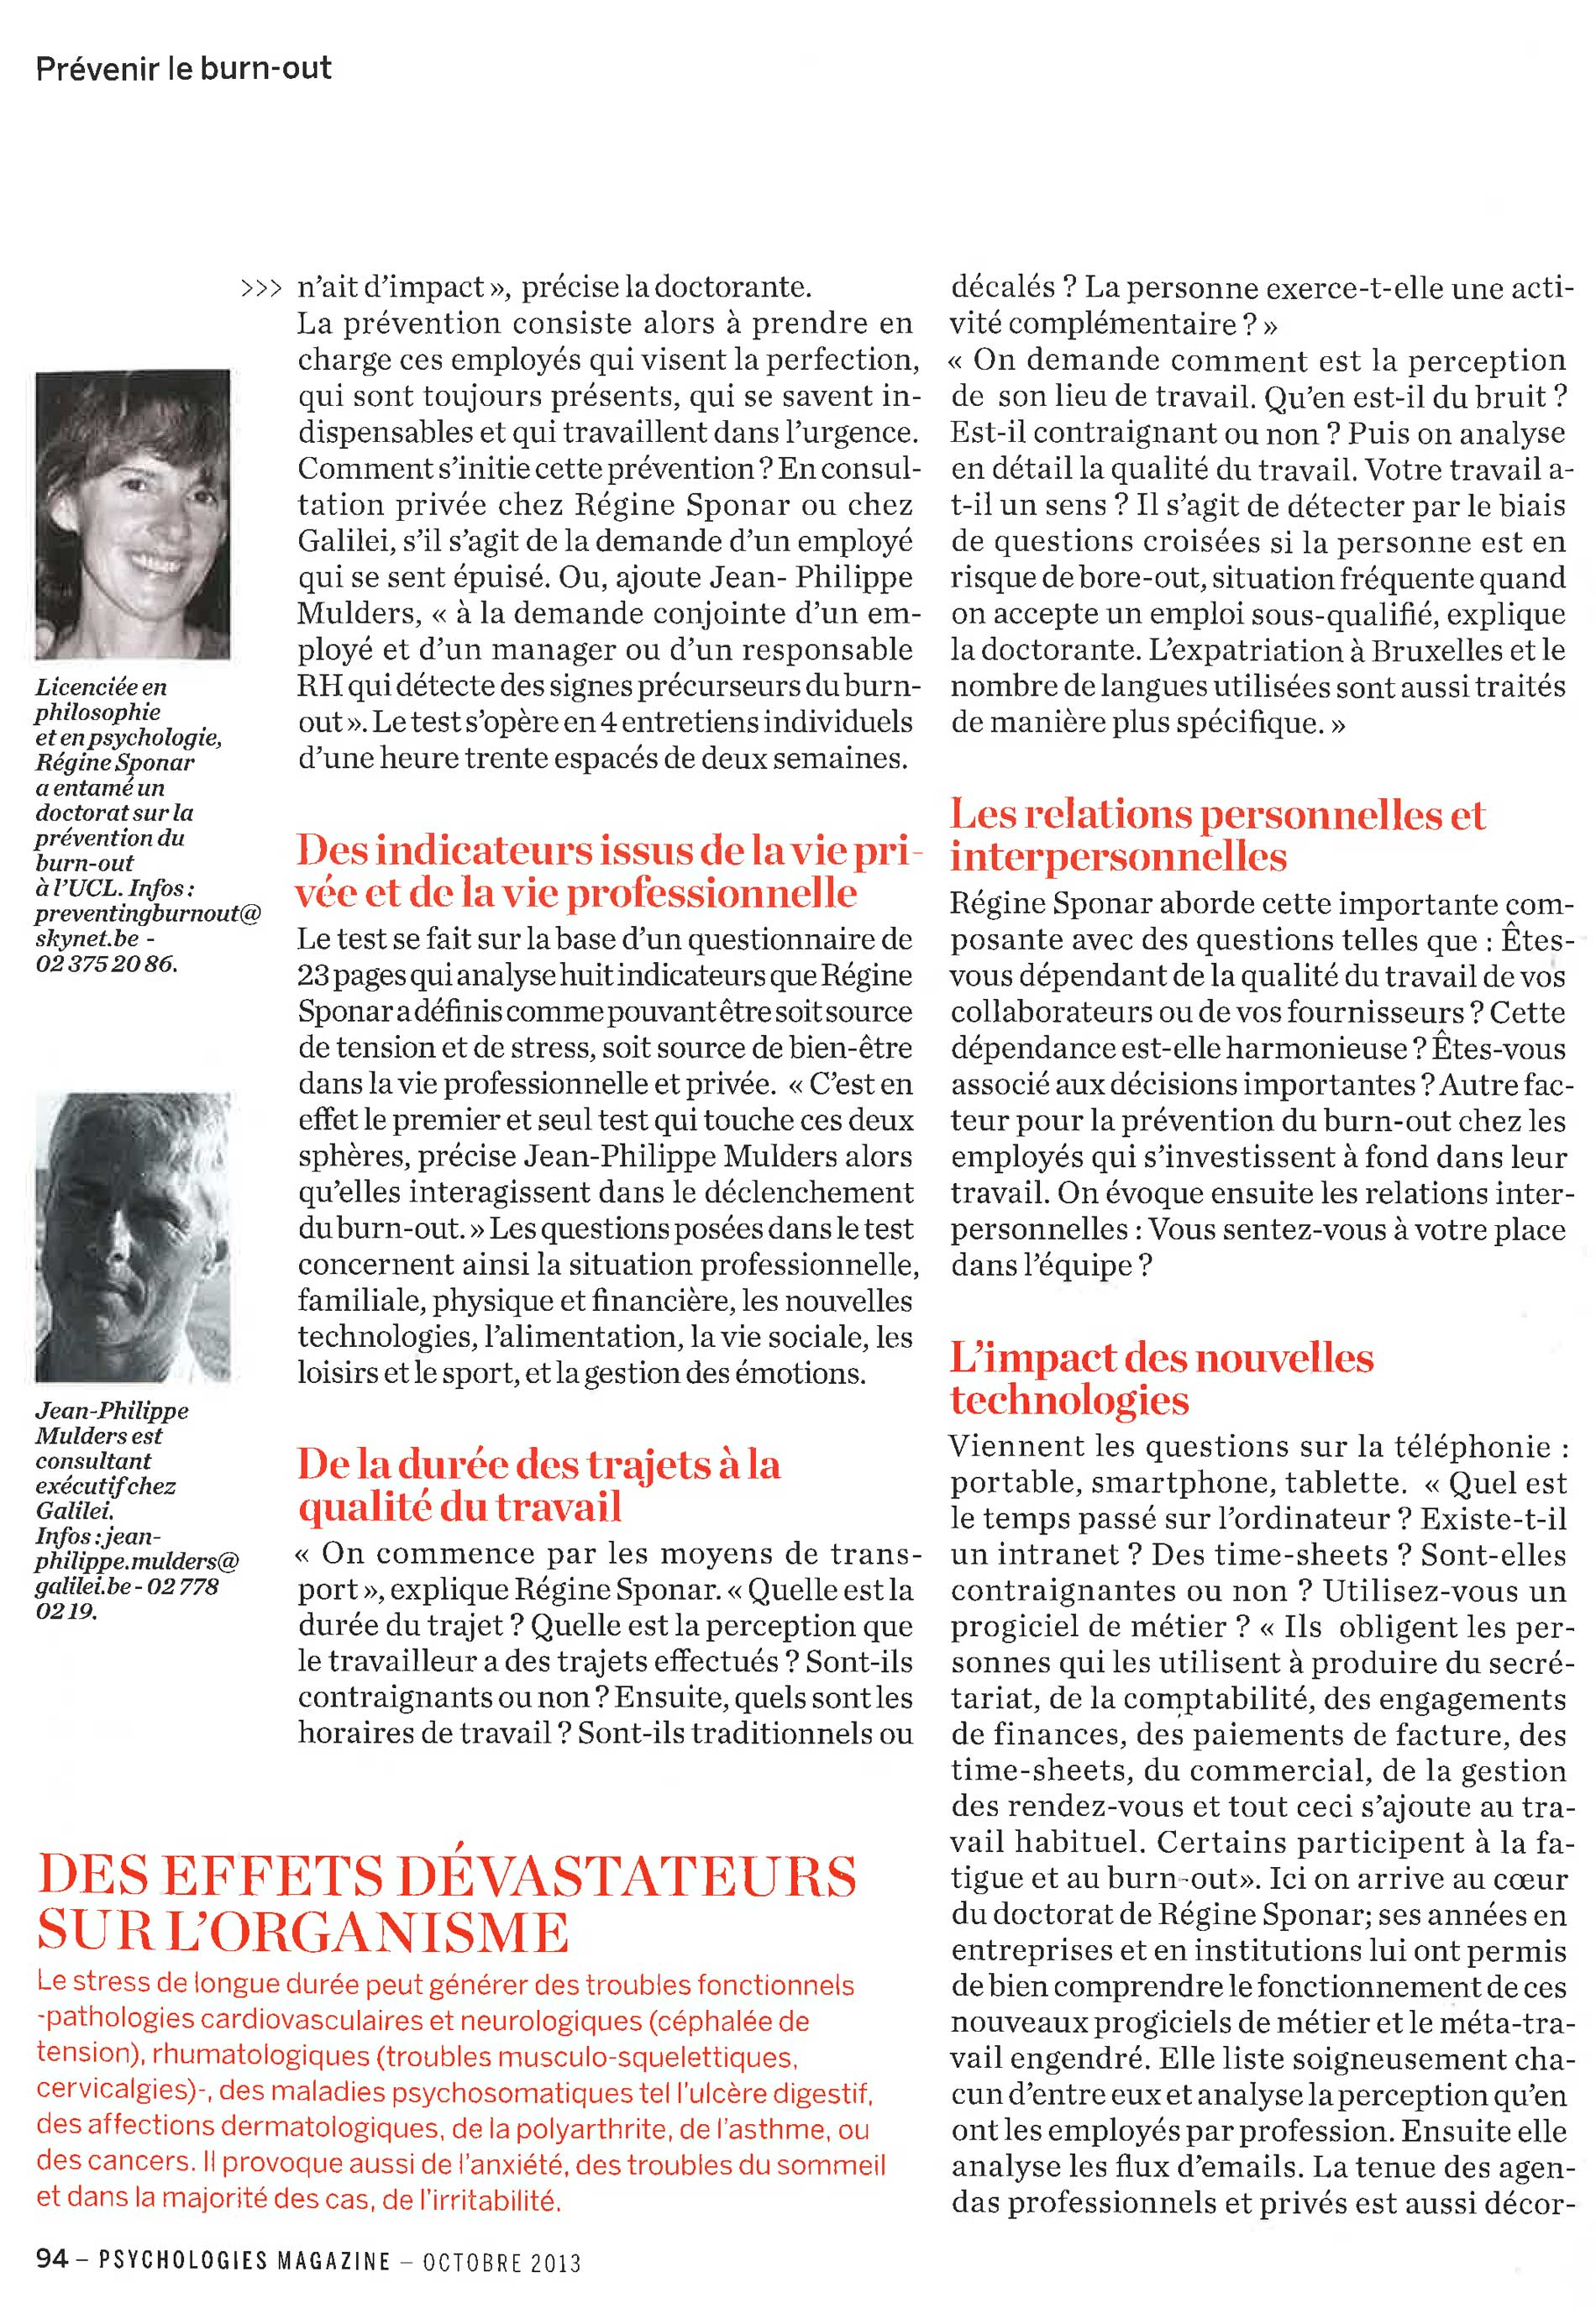 Psychologie Magazines 2